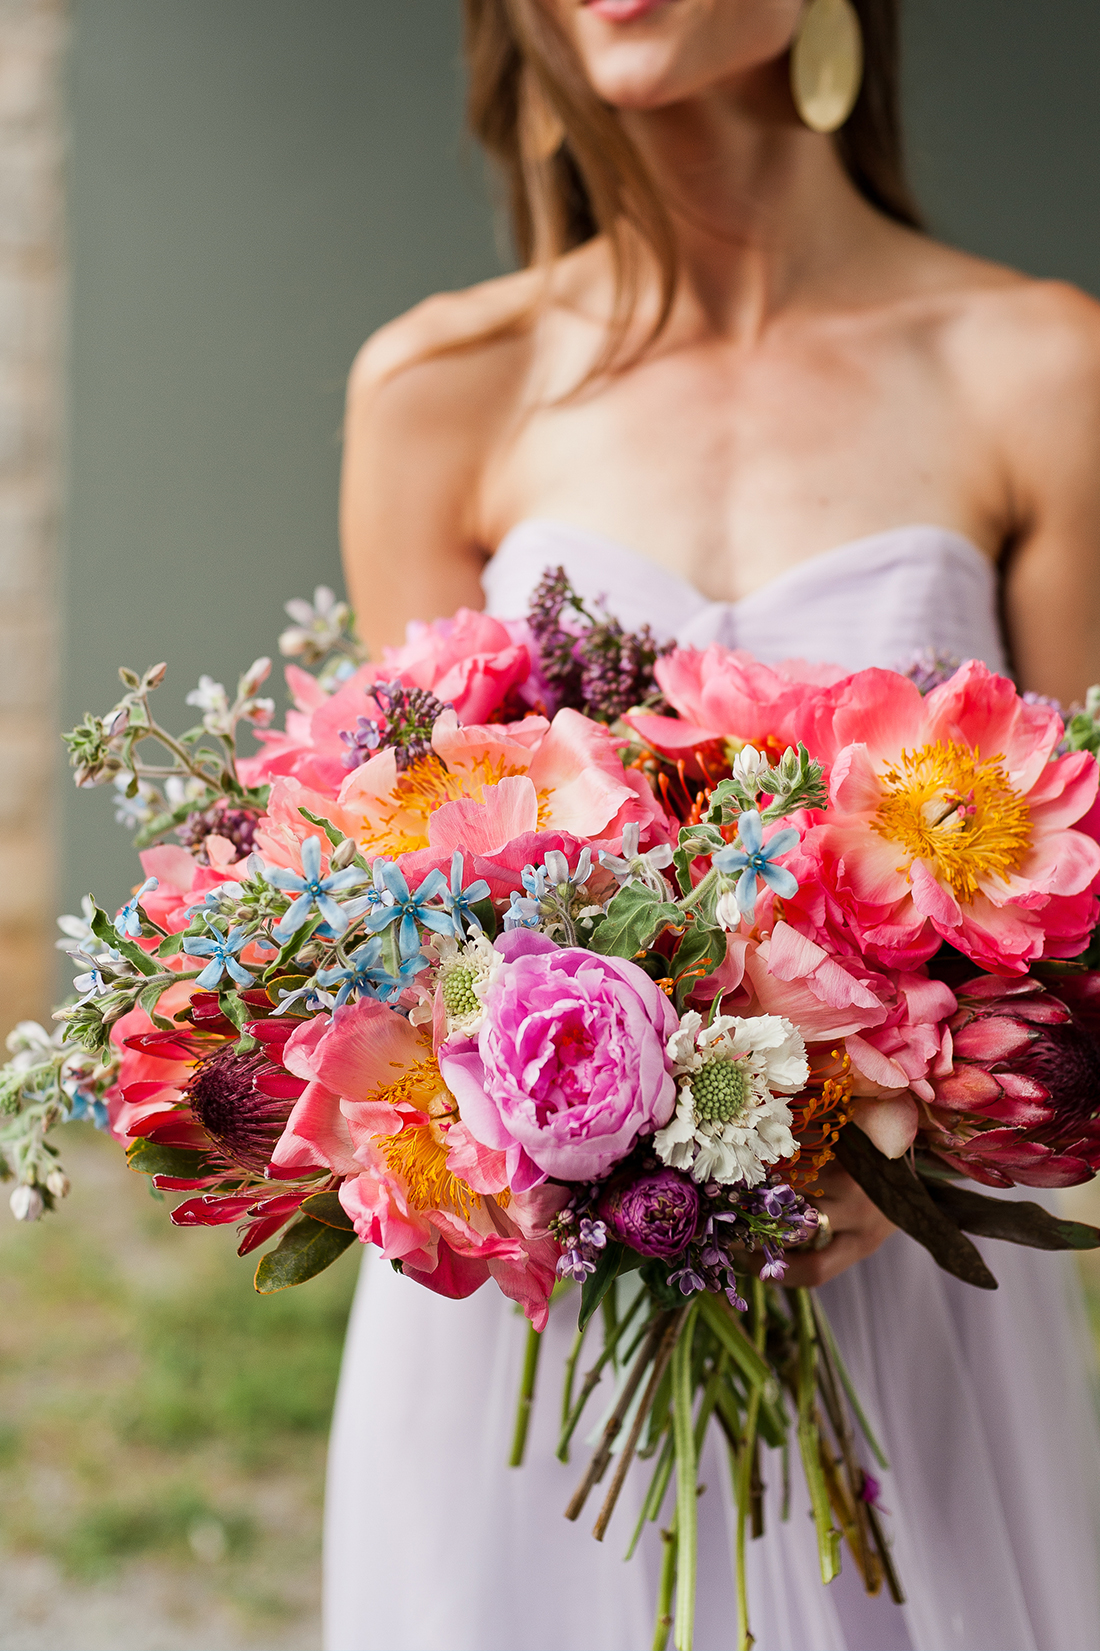 Wedding check out this stunning wedding bouquet you can diy hey bc brittni mehlhoff here the founding editorart directorstylist of paper stitch to bring one of my favorite wedding diys to the brit co mix solutioingenieria Gallery